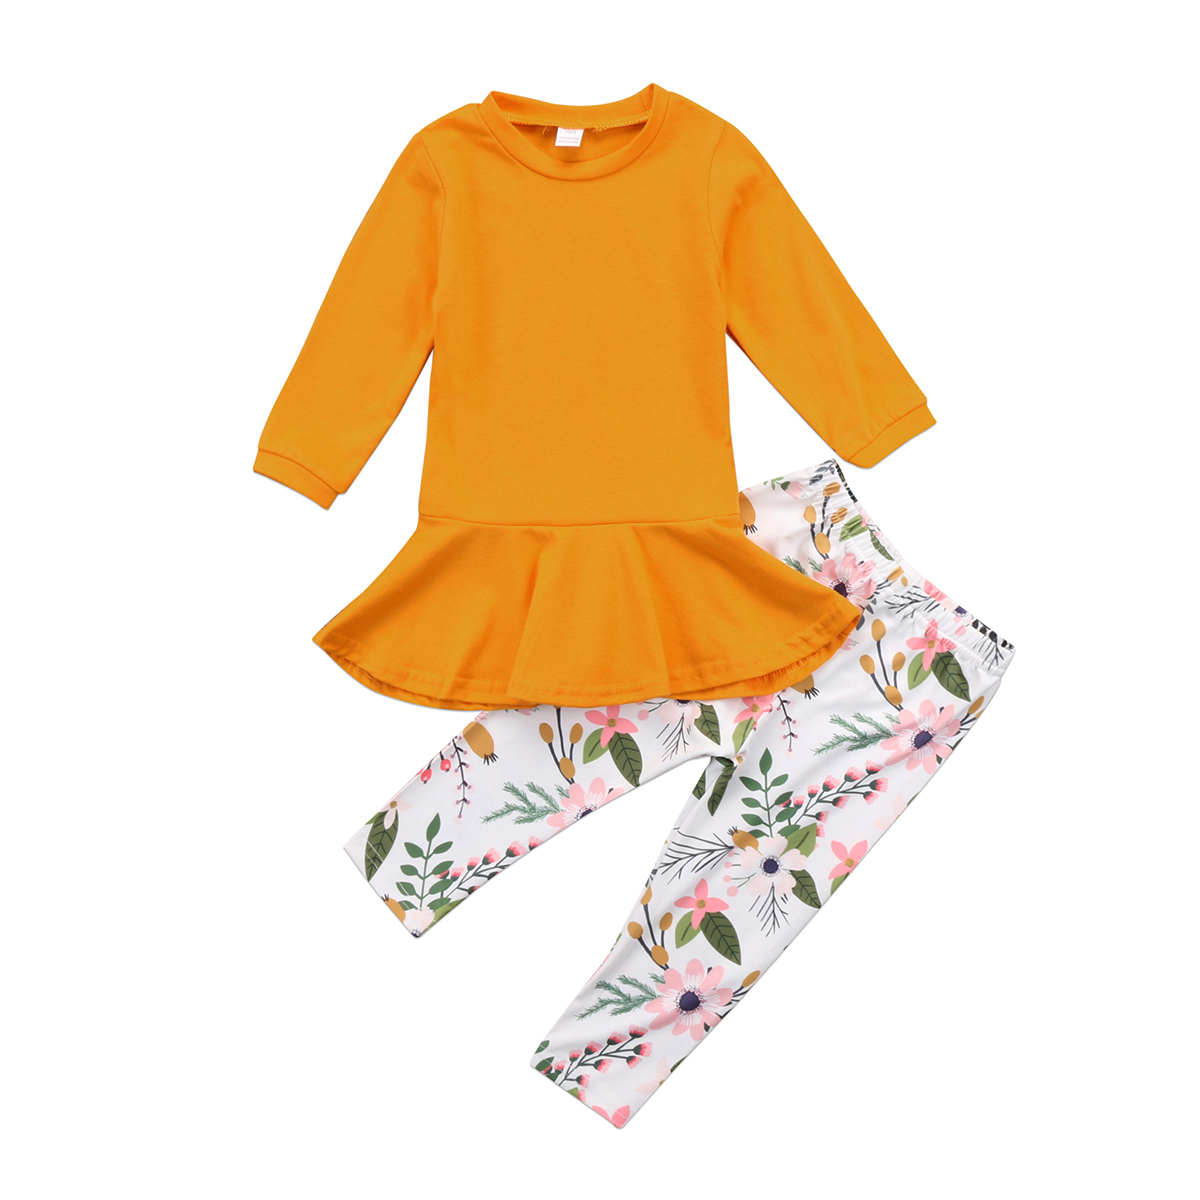 Toddler Kids Girls Outfits Clothes T-shirt Tops Dress+Floral Pants Casual Kids Autumn New Sets